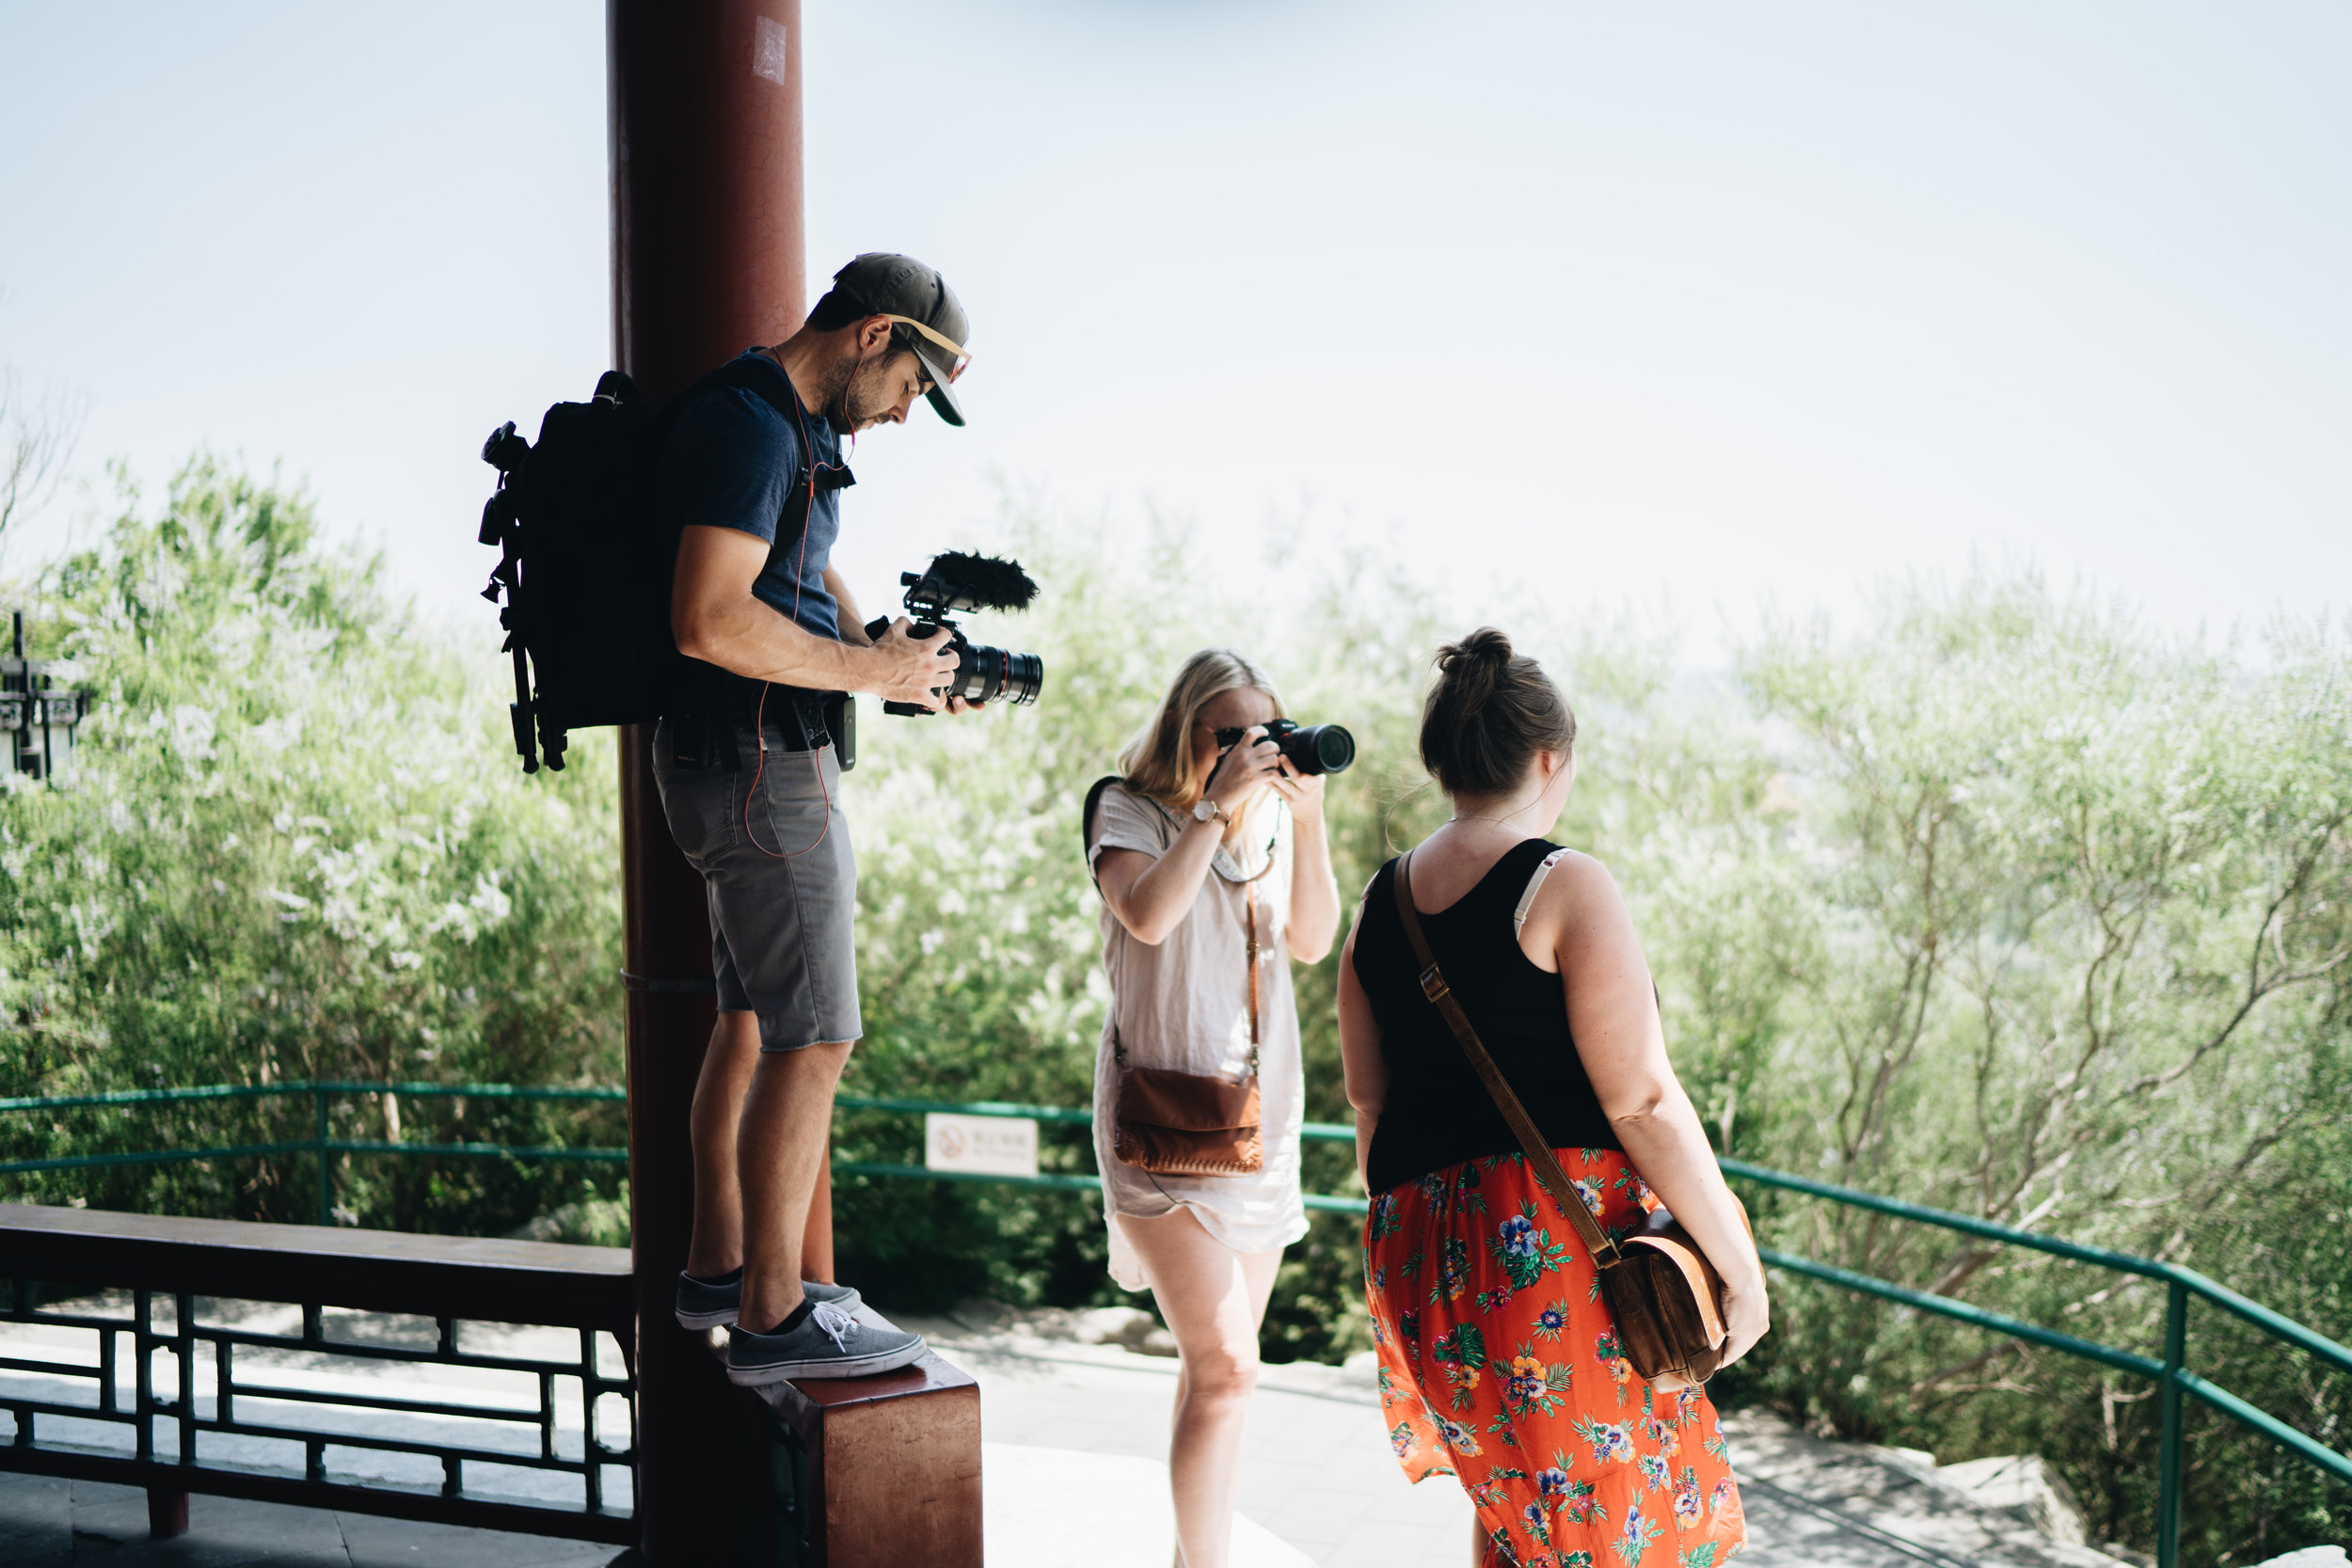 Behind the Scenes with Whitney + Nick - Travel footage and more!